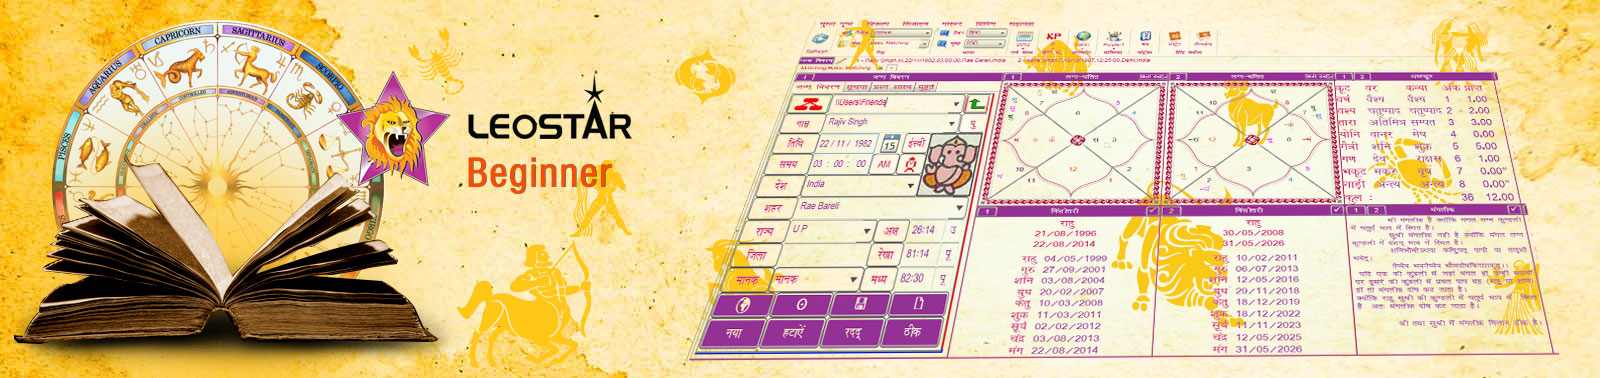 Leostar Beginner is best software in field of astrology